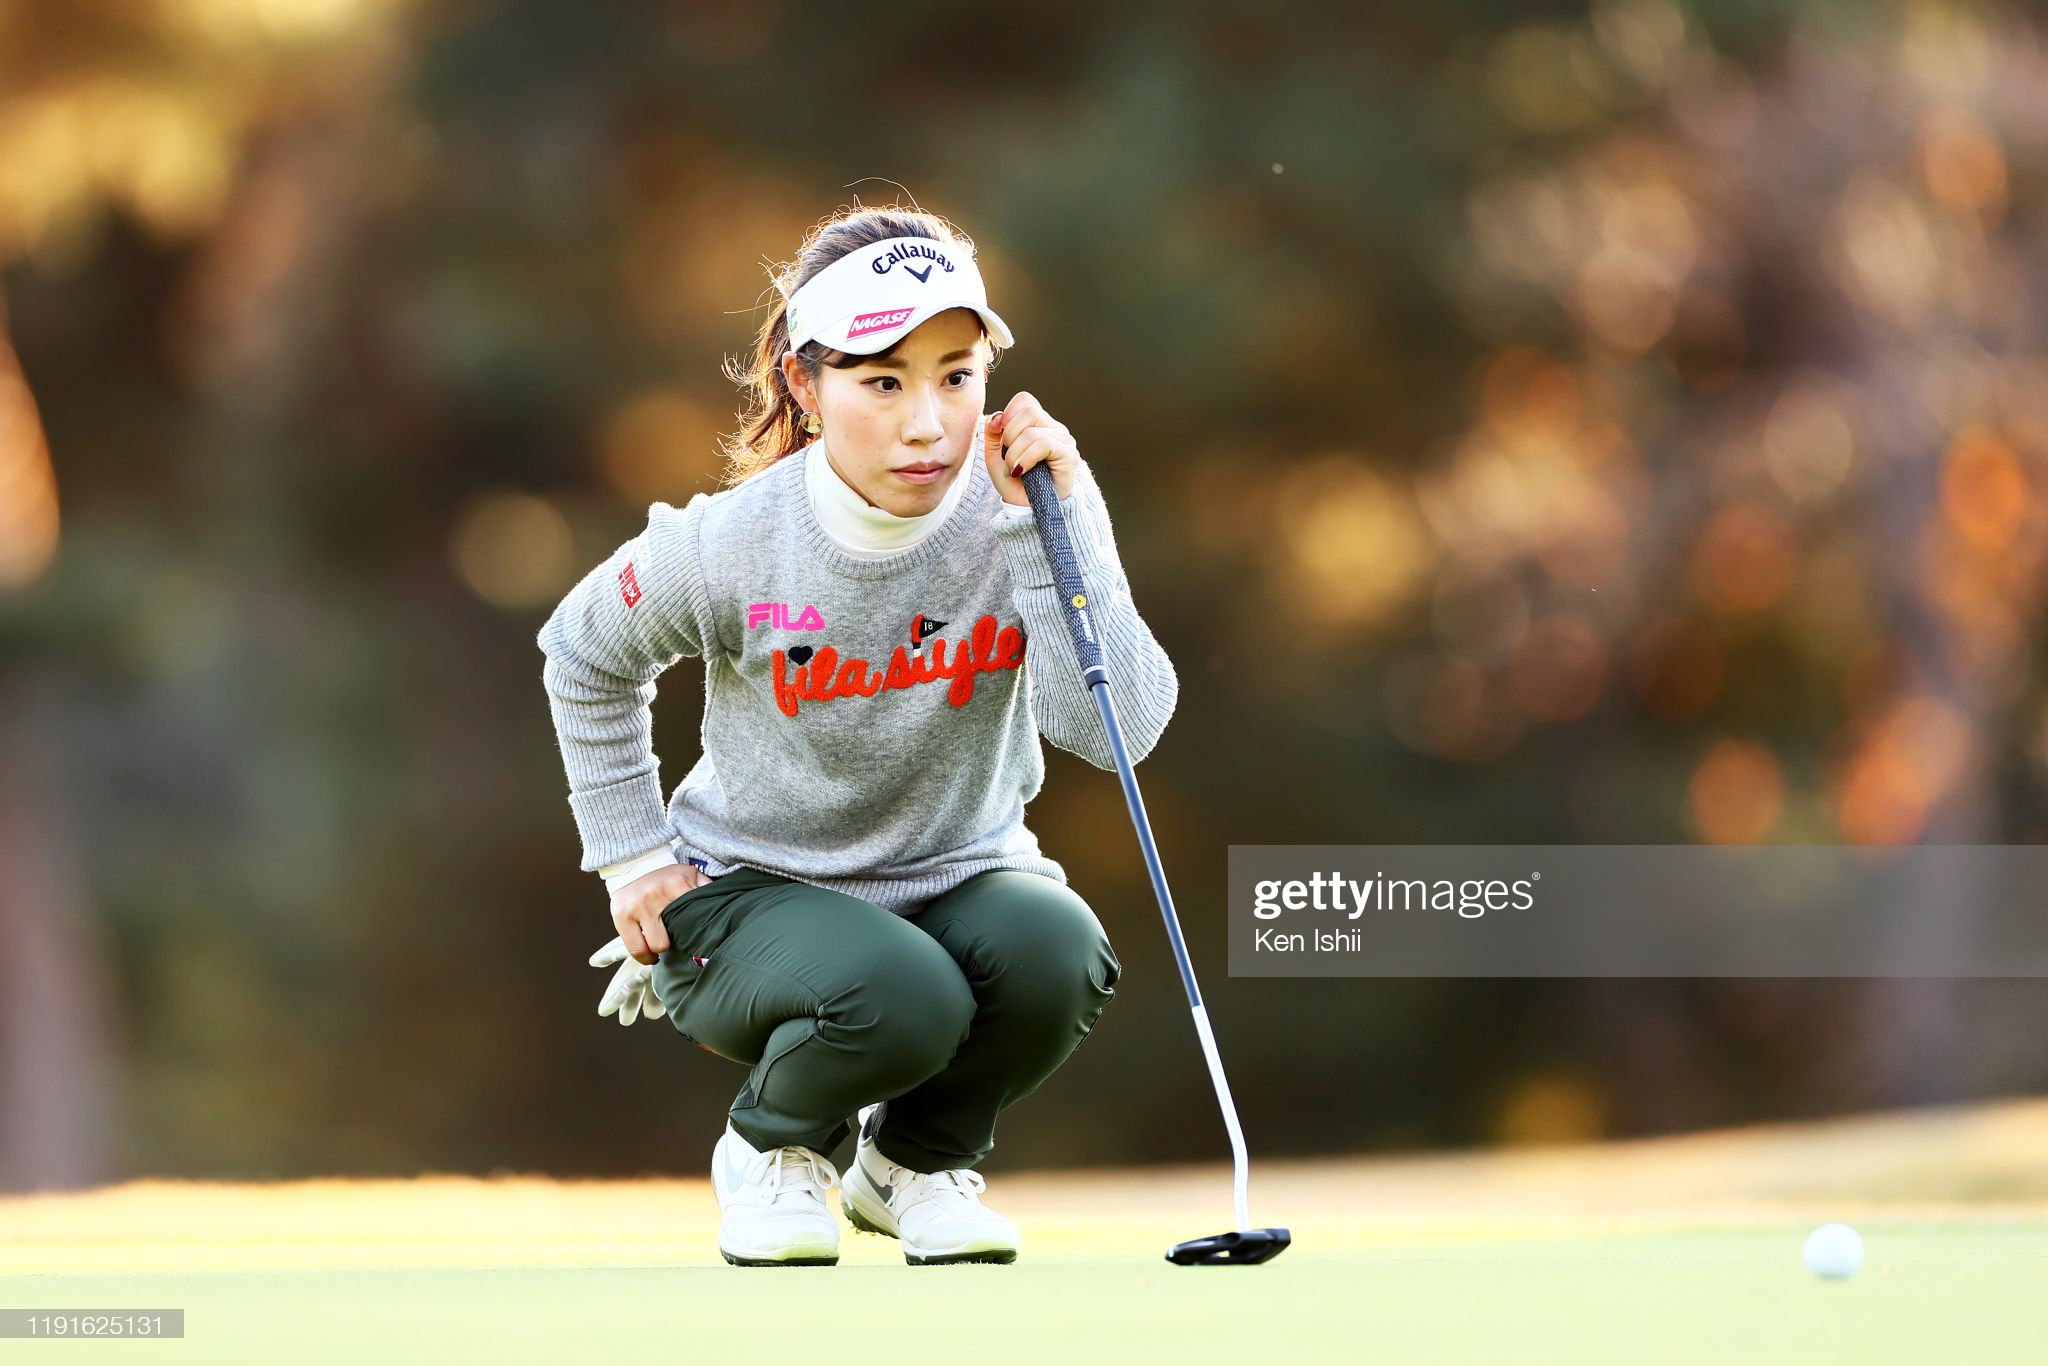 https://media.gettyimages.com/photos/ayako-kimura-of-japan-lines-up-a-putt-on-the-18th-green-during-the-picture-id1191625131?s=2048x2048